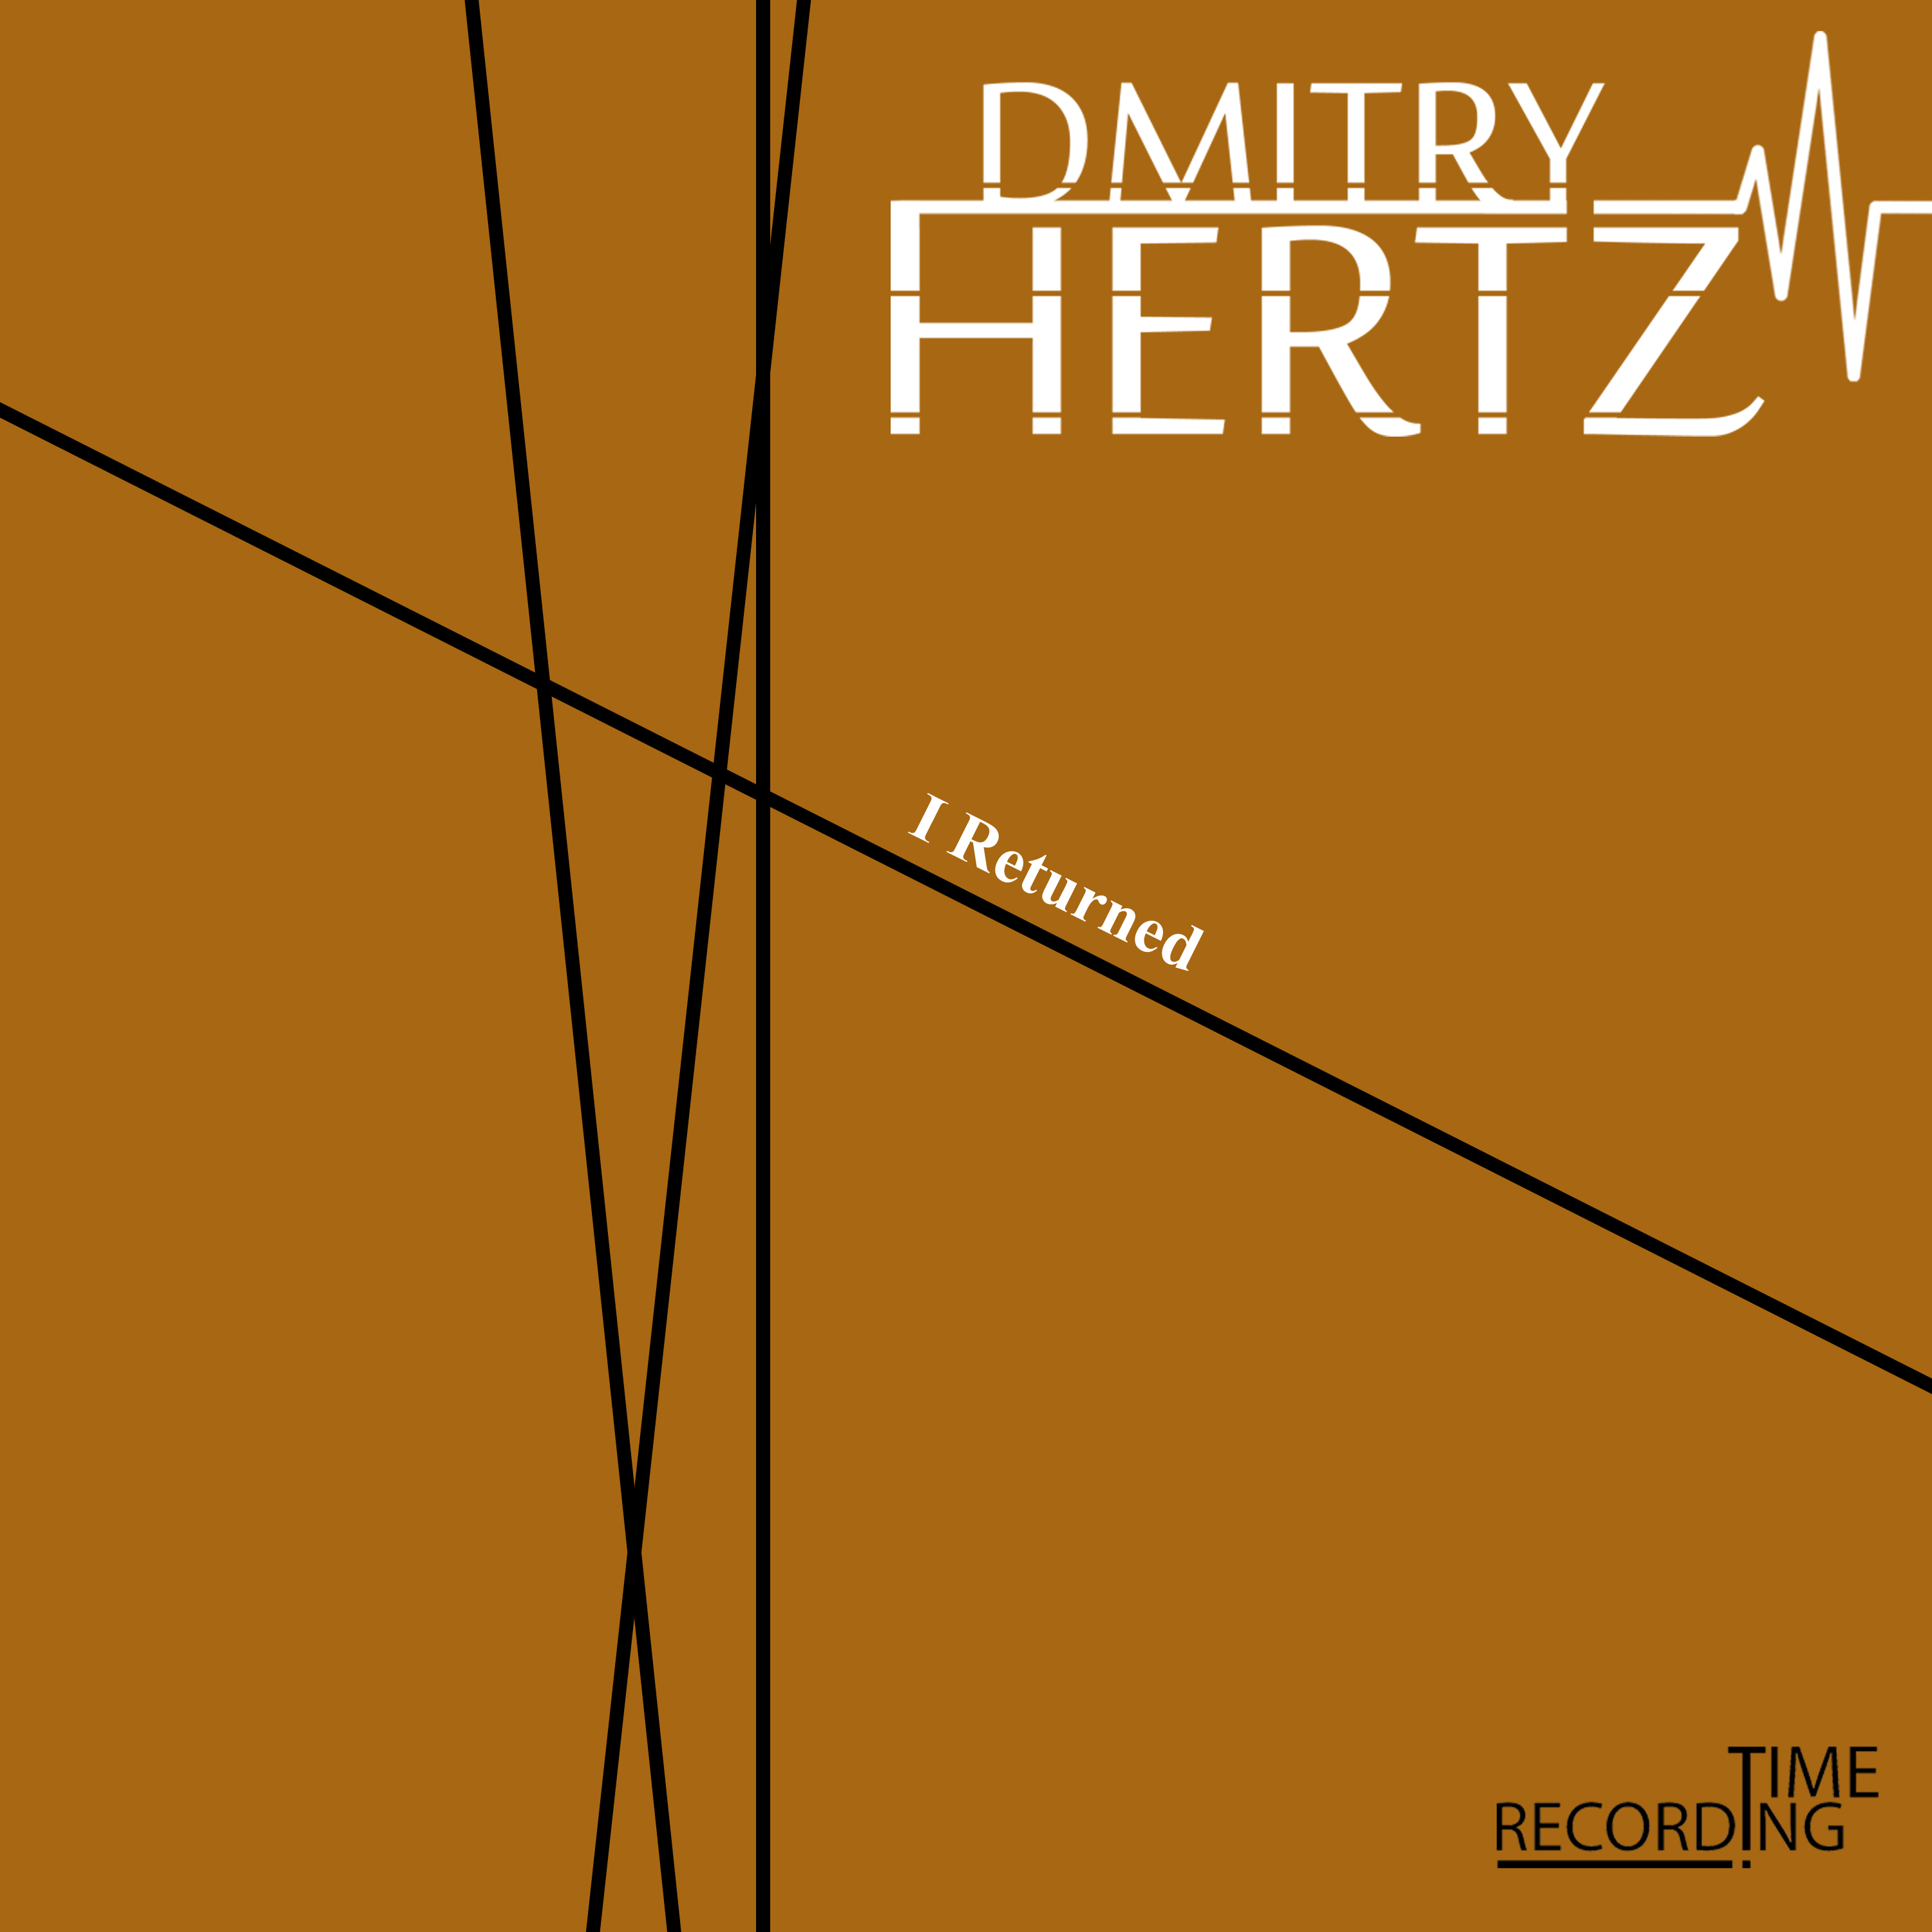 Dmitry Hertz - I Returned (Original Mix)